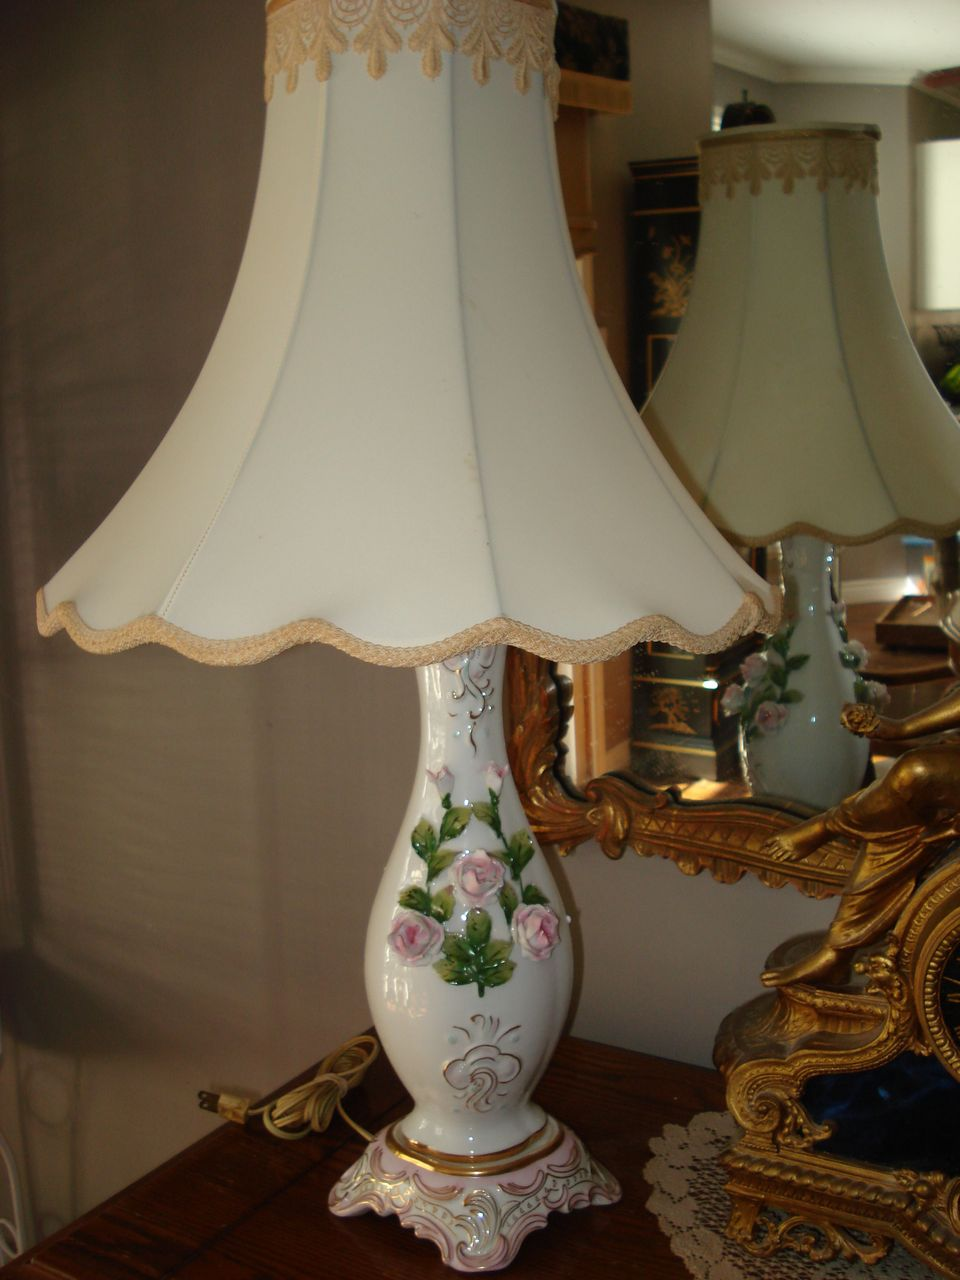 French Porcelain Relief Floral Lamp